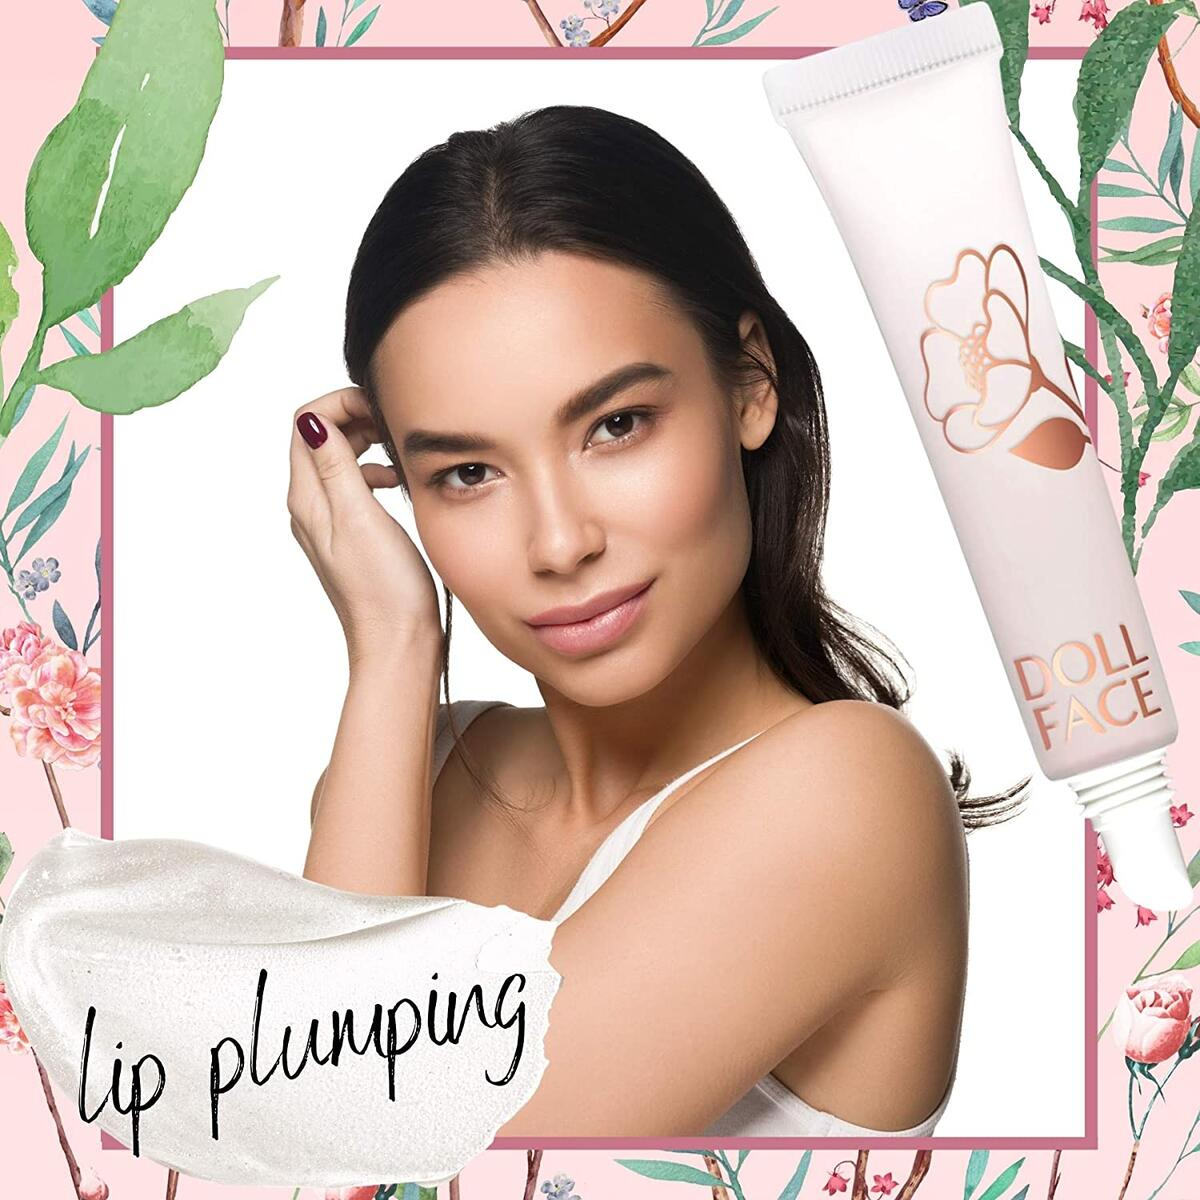 DOLL FACE Lip Plumper, Poutrageous Plumping Lip Gloss Balm with MaxiLIP Tri-Action Complex - Plumps, Moisturizers & Smooths Lips, Enhancer, 0.33oz (Clear)